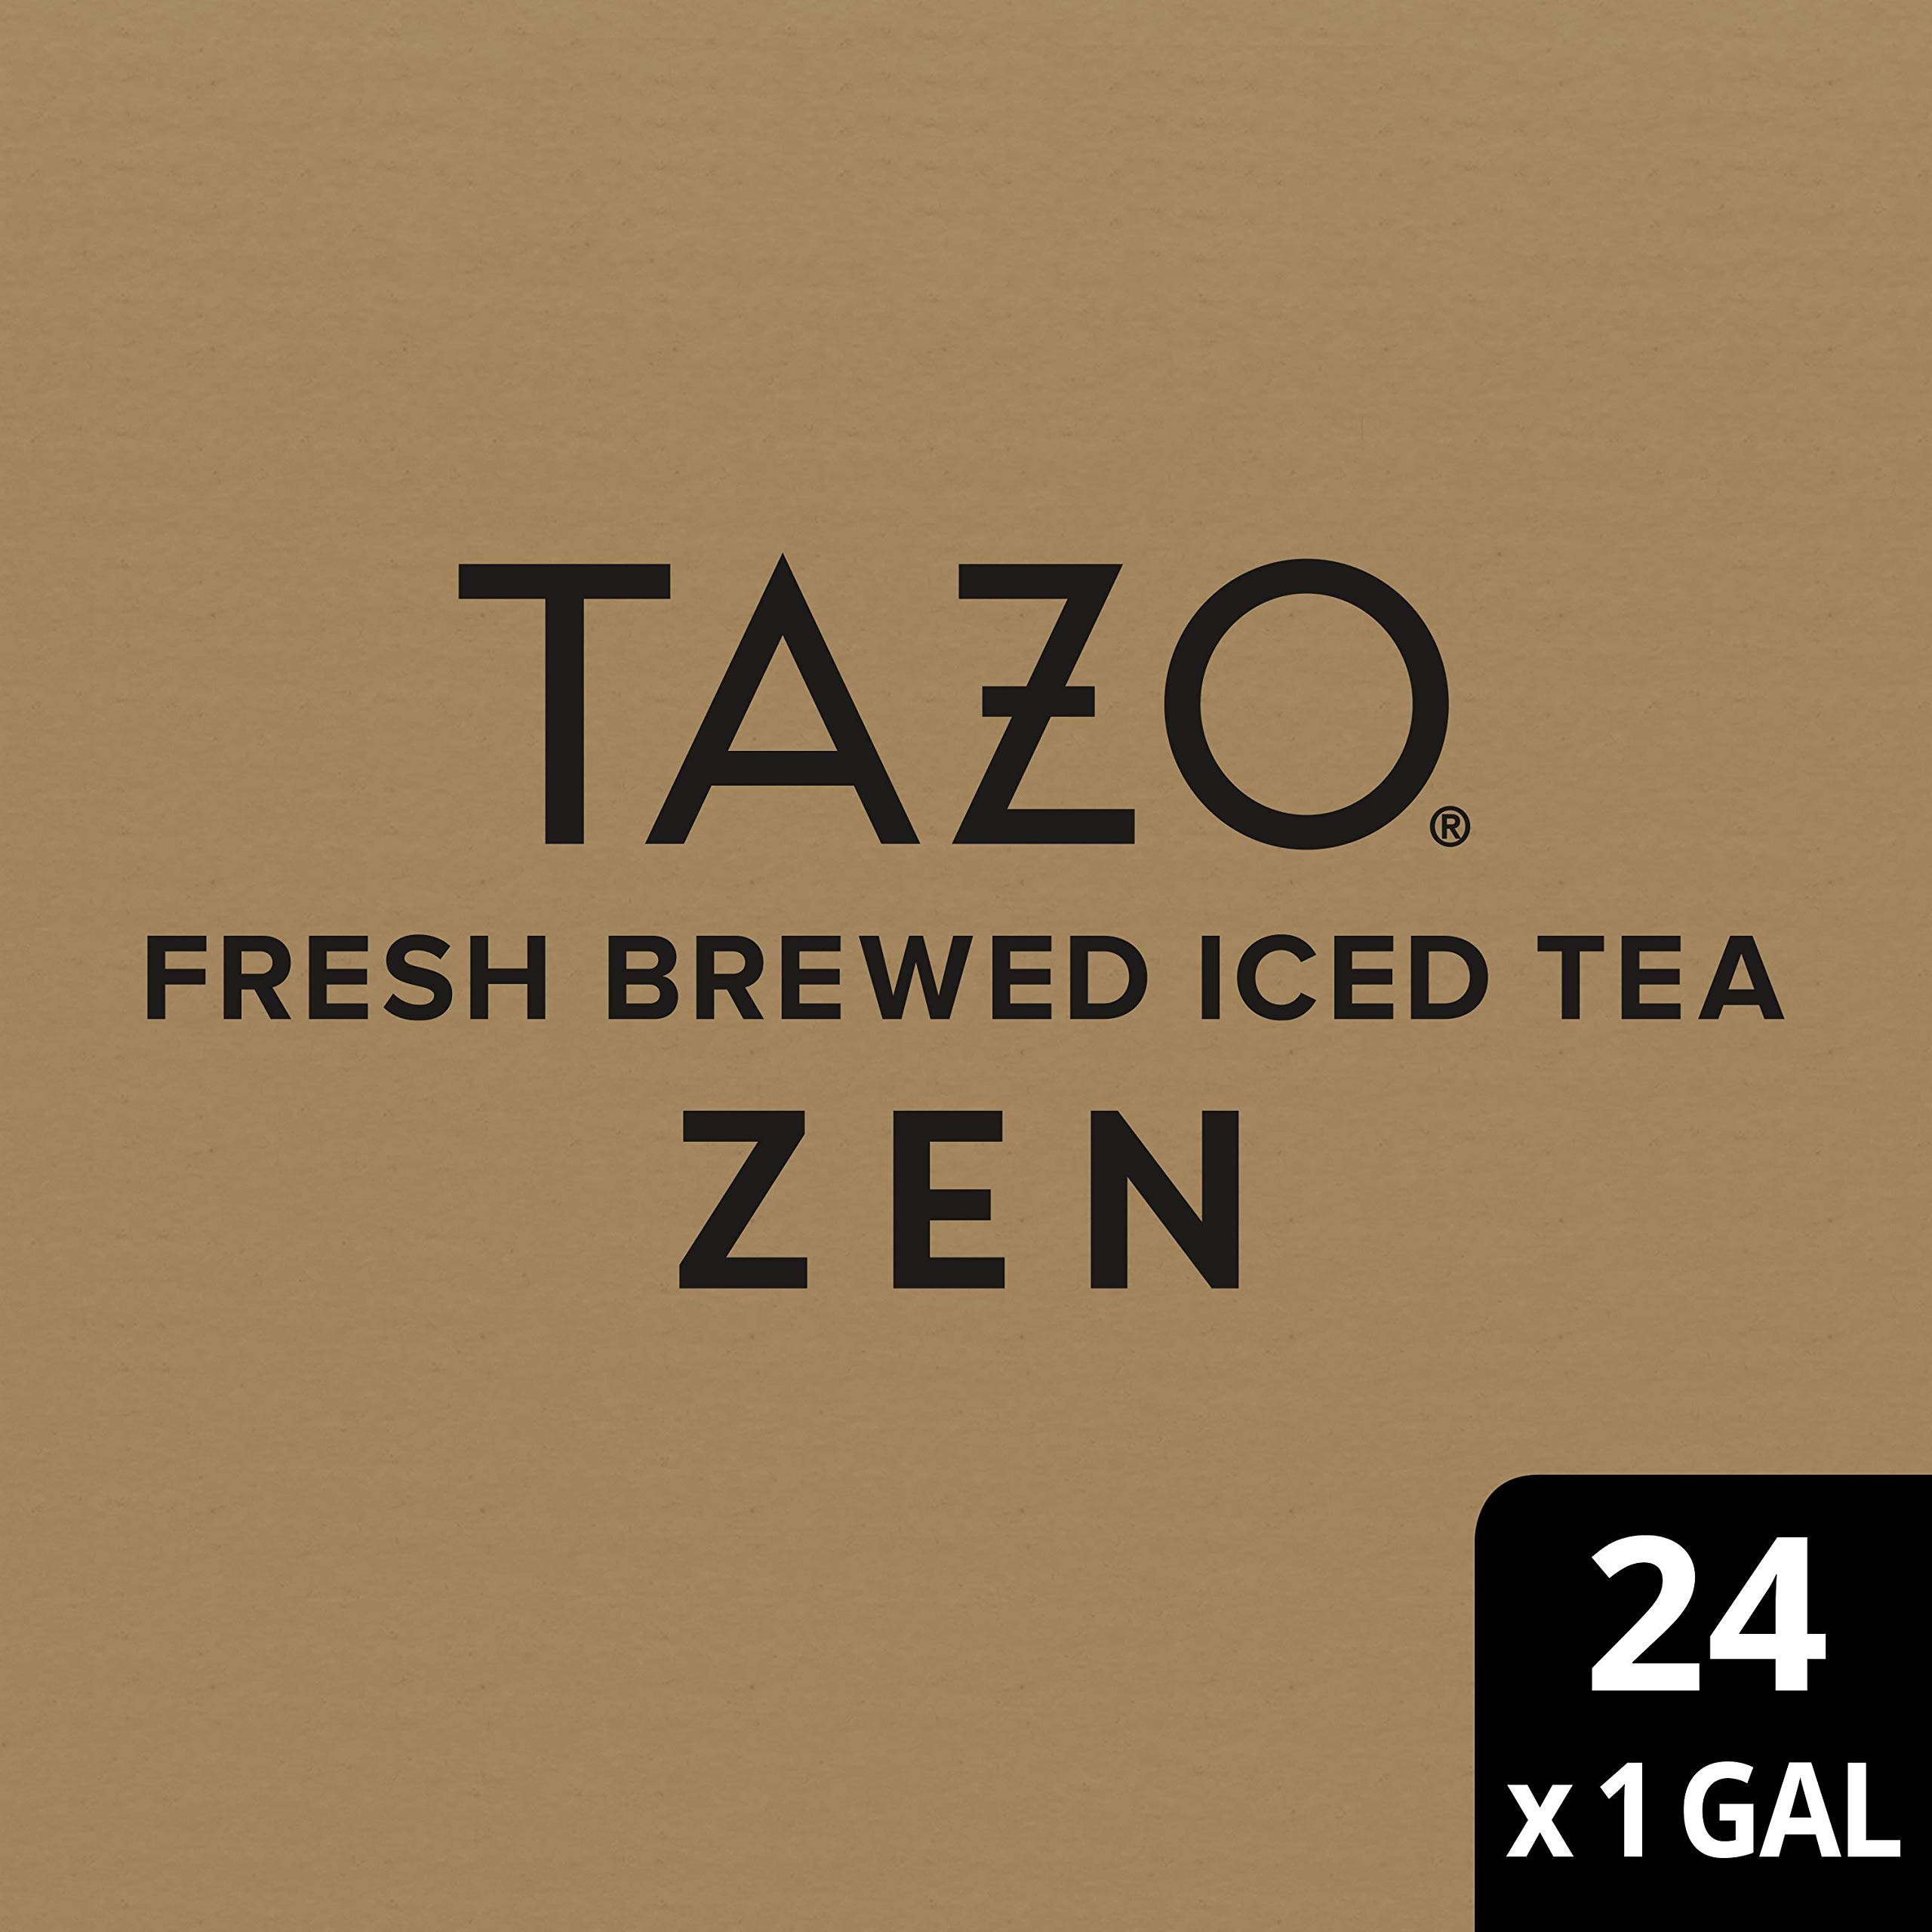 Tazo Zen Green Unsweetened Fresh Brewed Iced Tea Non GMO, 1 gallon, Pack of 24